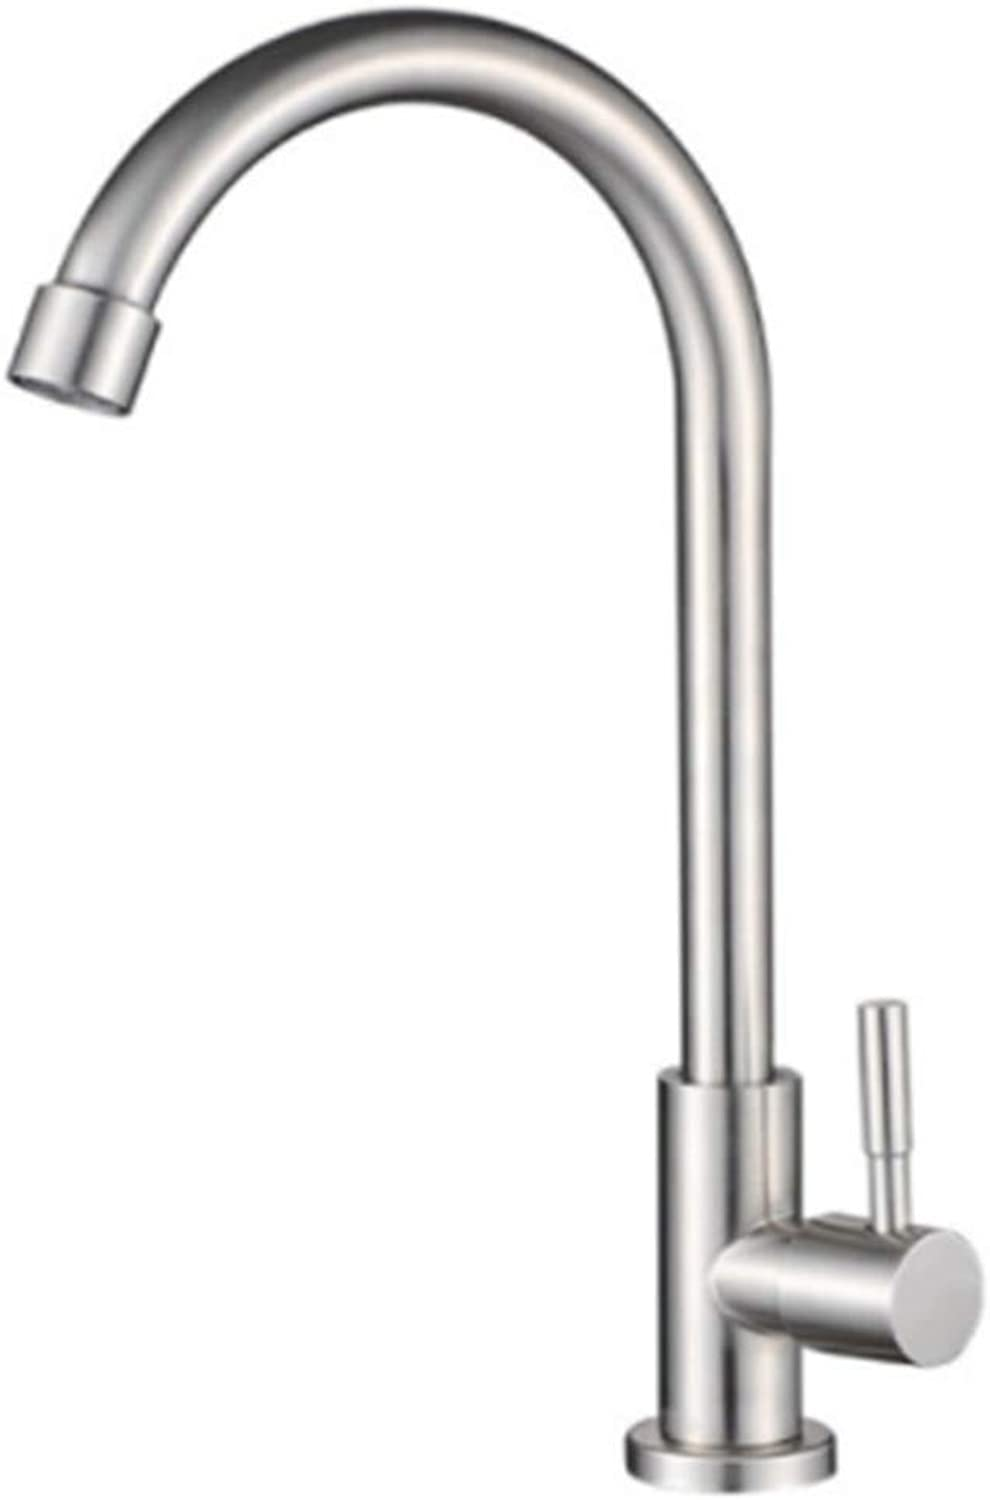 Kitchen Taps Faucet Modern Kitchen Sink Taps Stainless Steelkitchen Washing Basin Single Cold Water Faucet 304 Stainless Steel Basin Faucet Water Swivel Faucet Basin